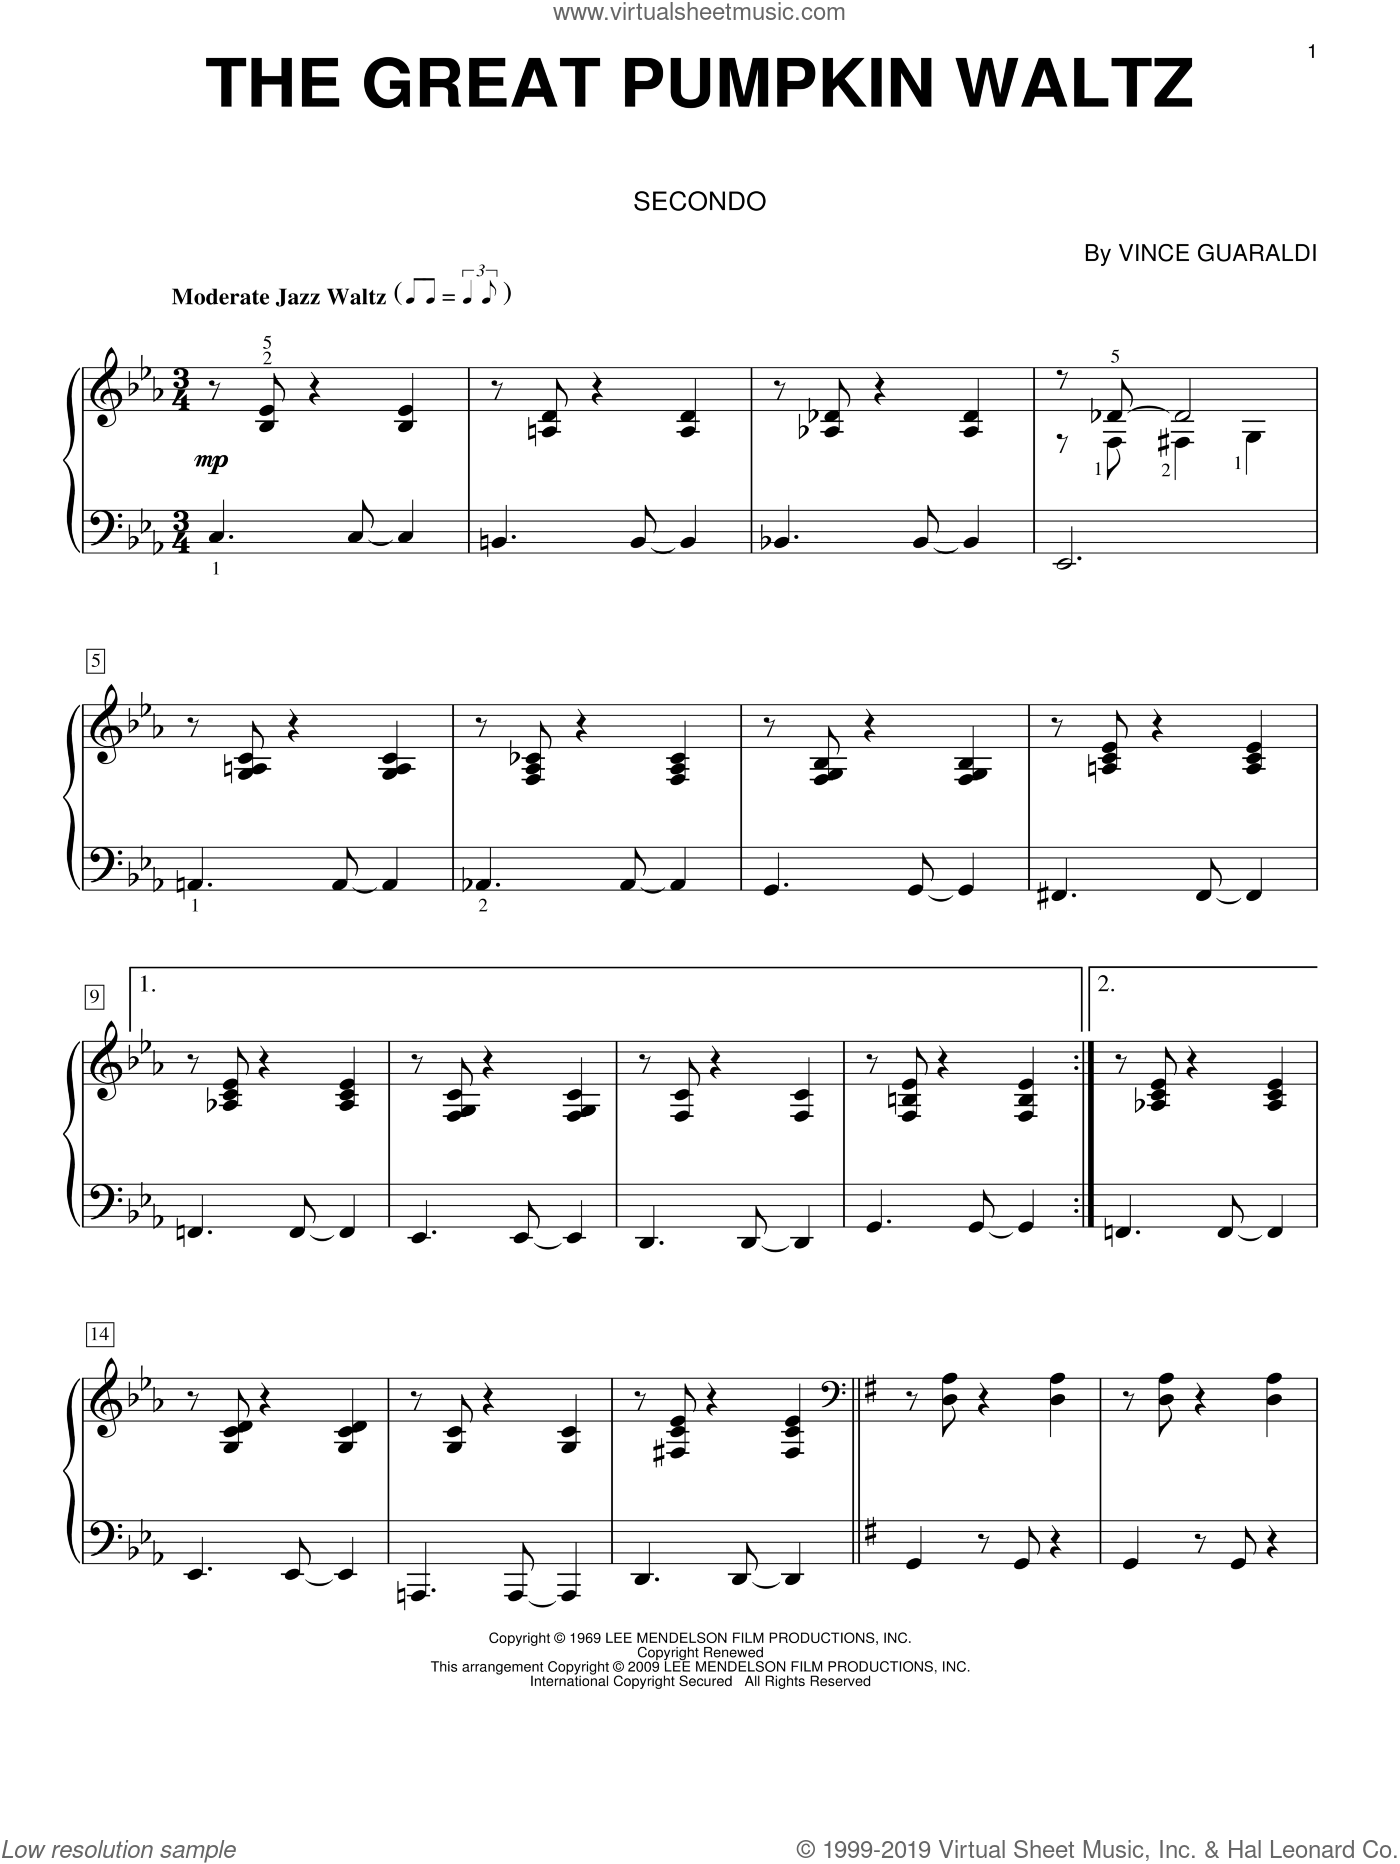 The Great Pumpkin Waltz sheet music for piano four hands (duets) by Vince Guaraldi